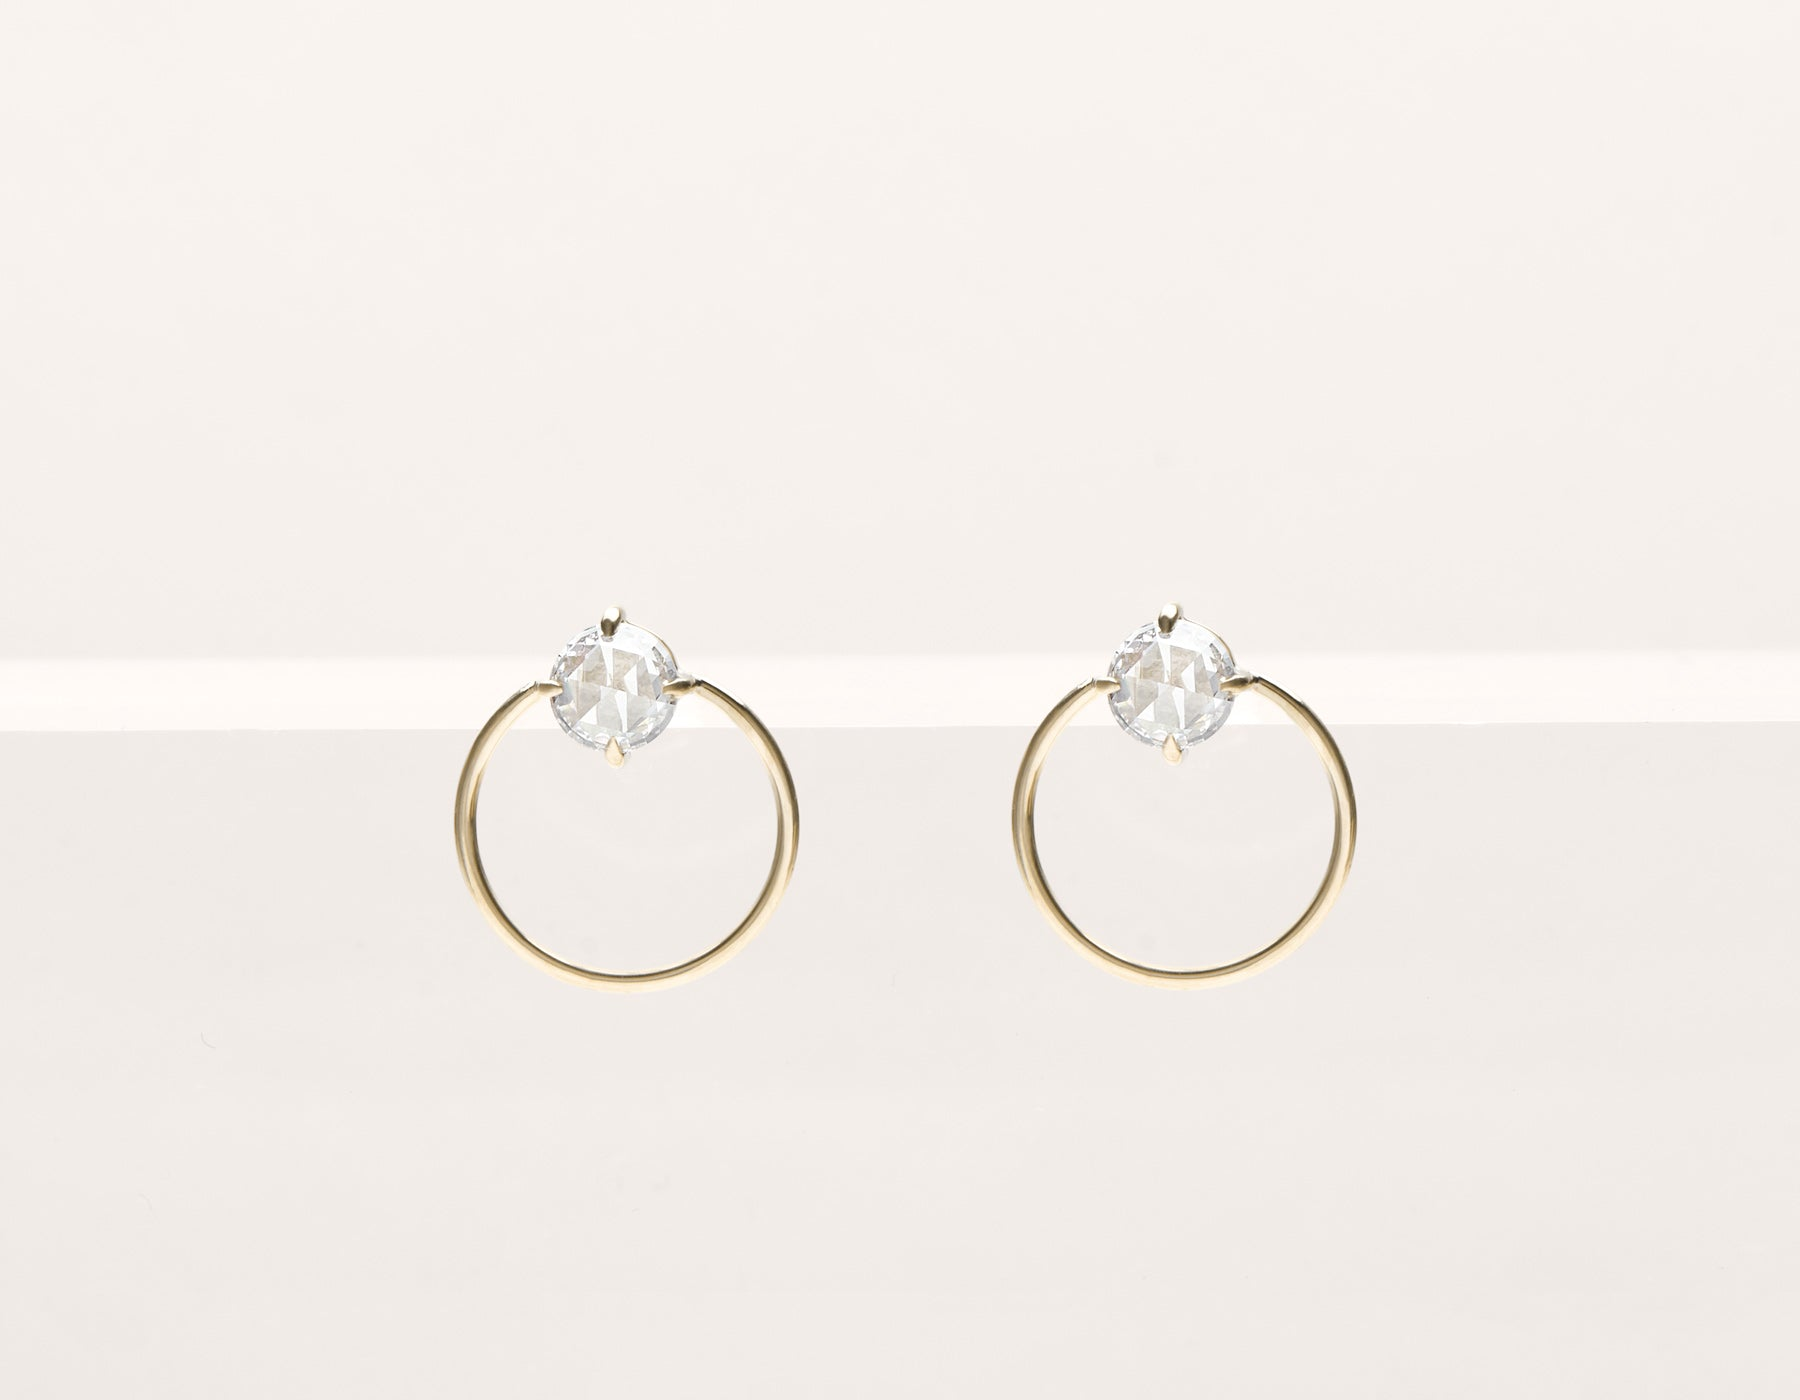 Modern minimalist 18k solid gold rose cut Diamond Door Knocker stud front facing circle hoops earrings by Vrai & Oro black label, 18K Yellow Gold